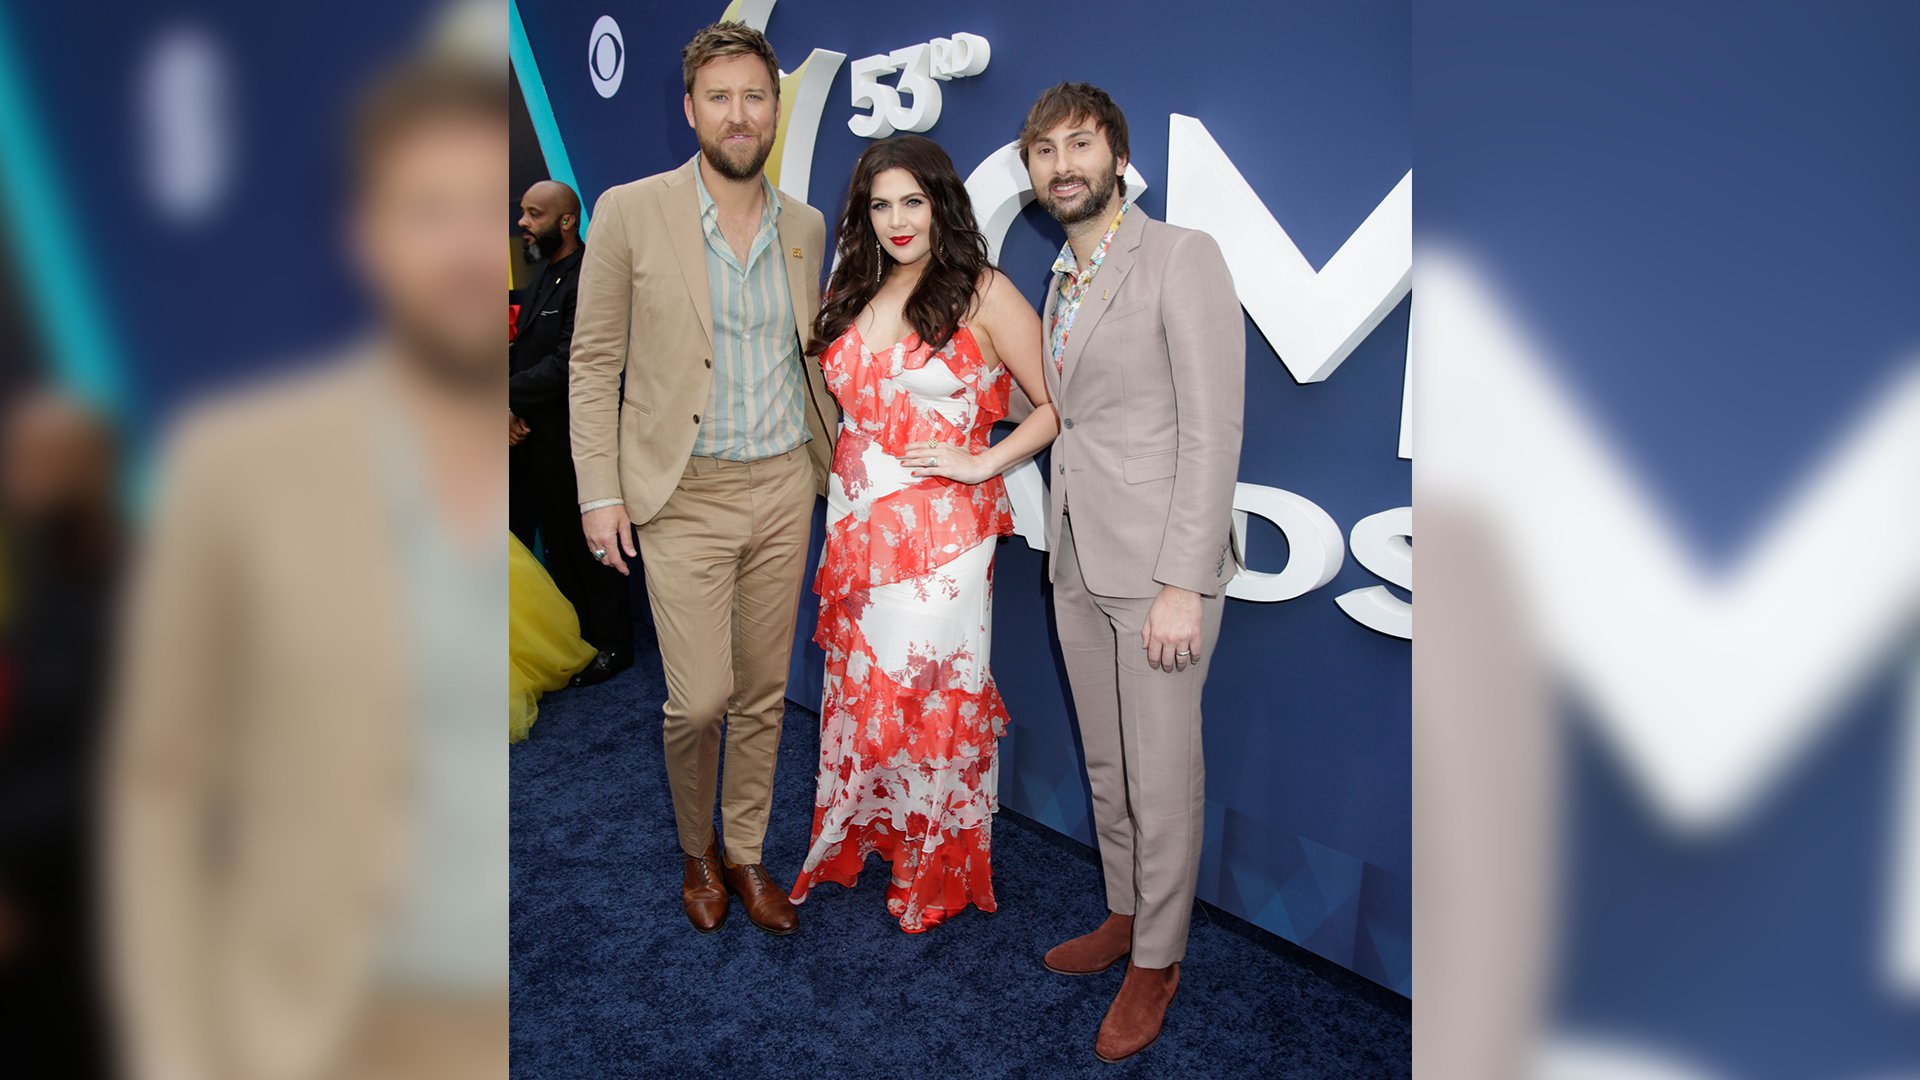 Lady Antebellum take a stroll down the ACM red carpet before their performance of